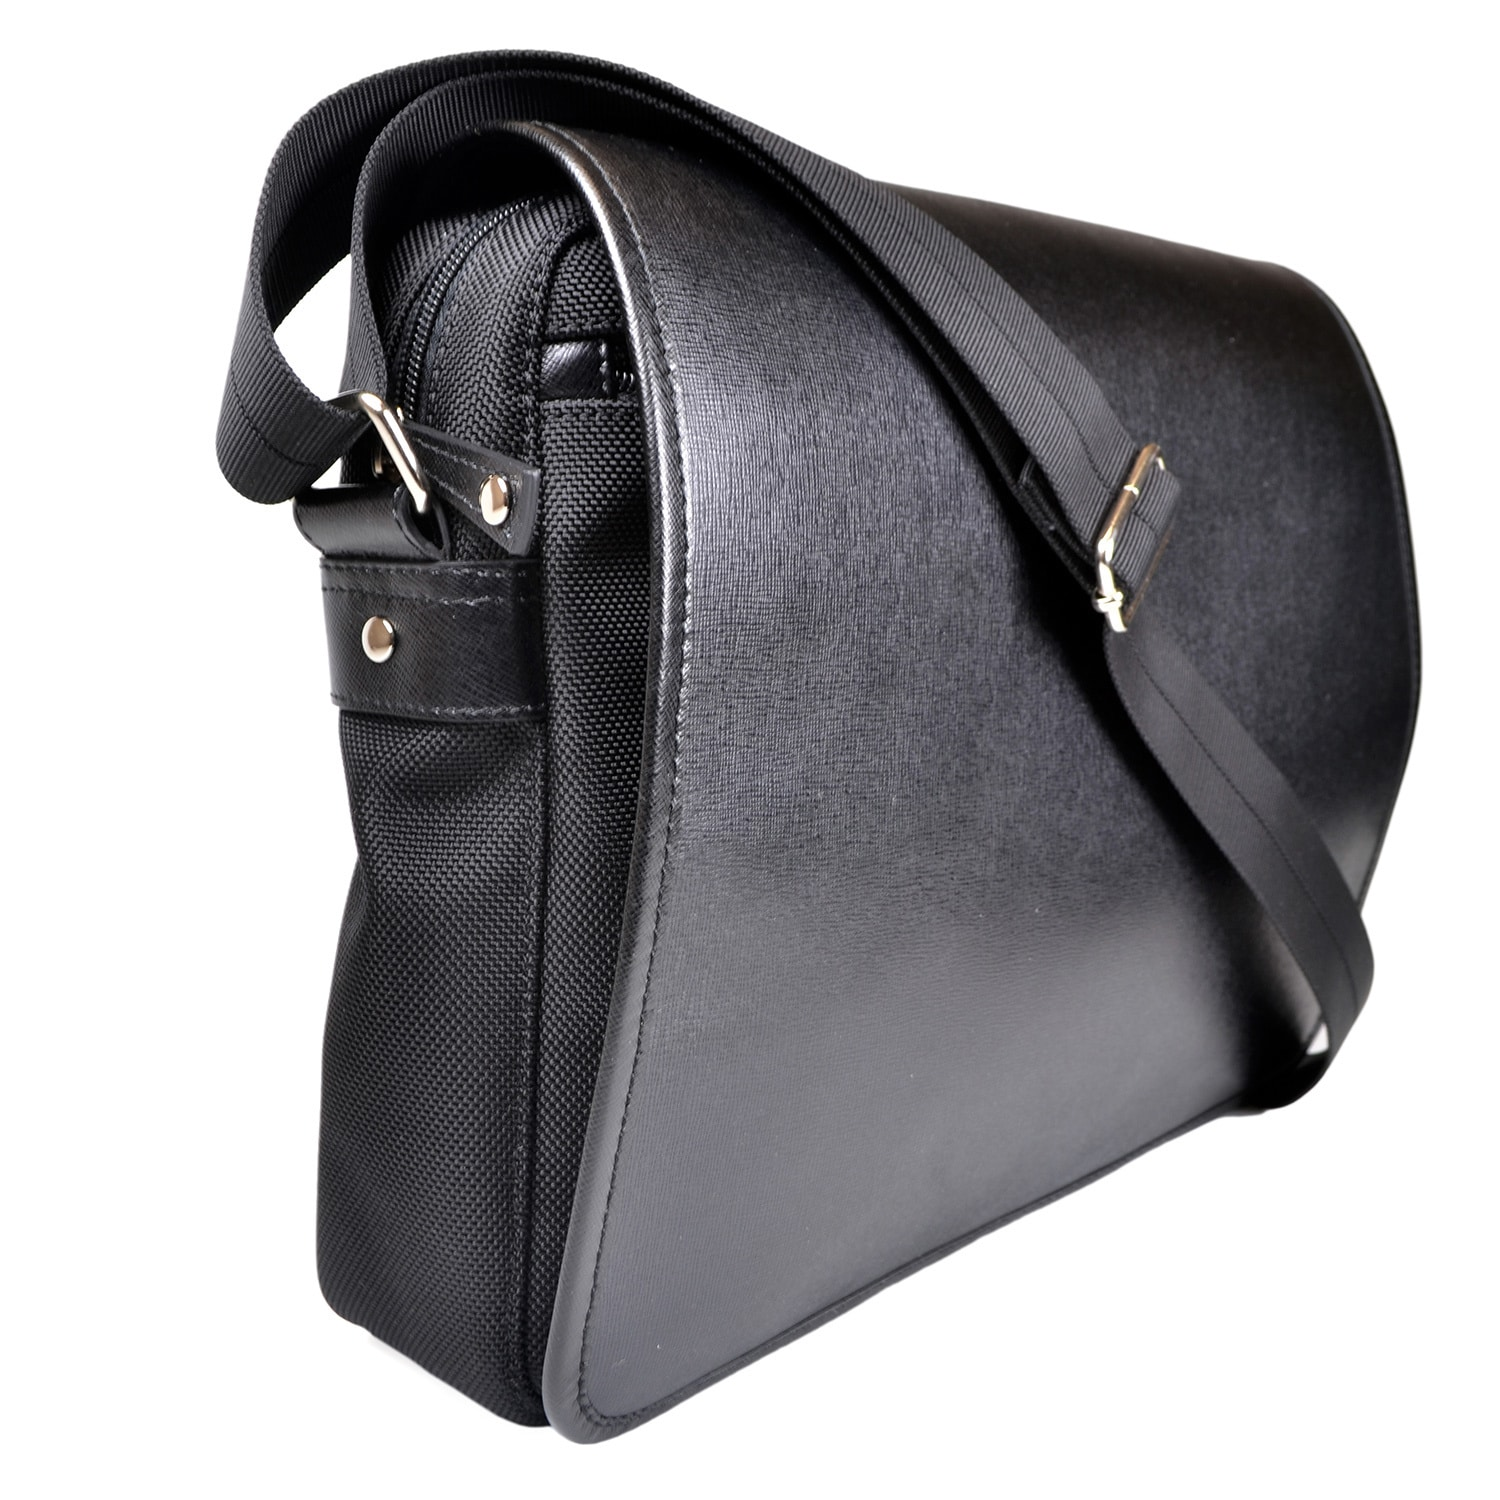 cdd34640669 Royce Leather Saffiano Leatherry Laptop Messenger Bag 794809055421 ...